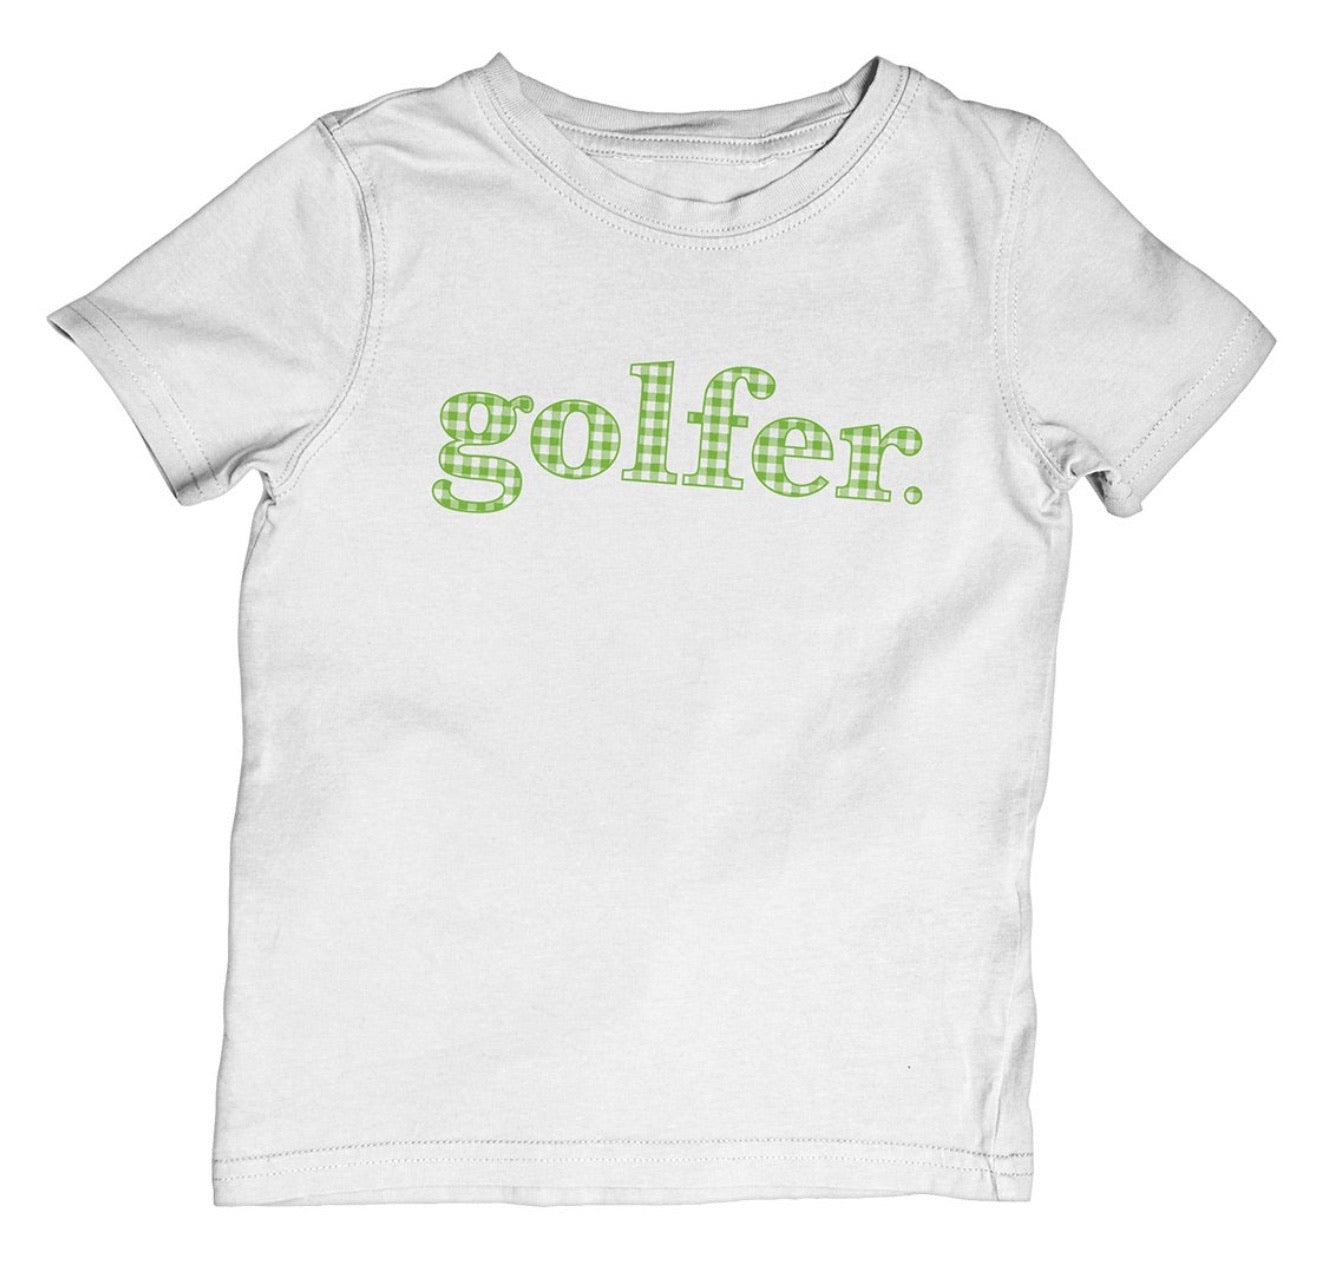 "The Littlest Golfer ""Golfer"" Gingham Tee"